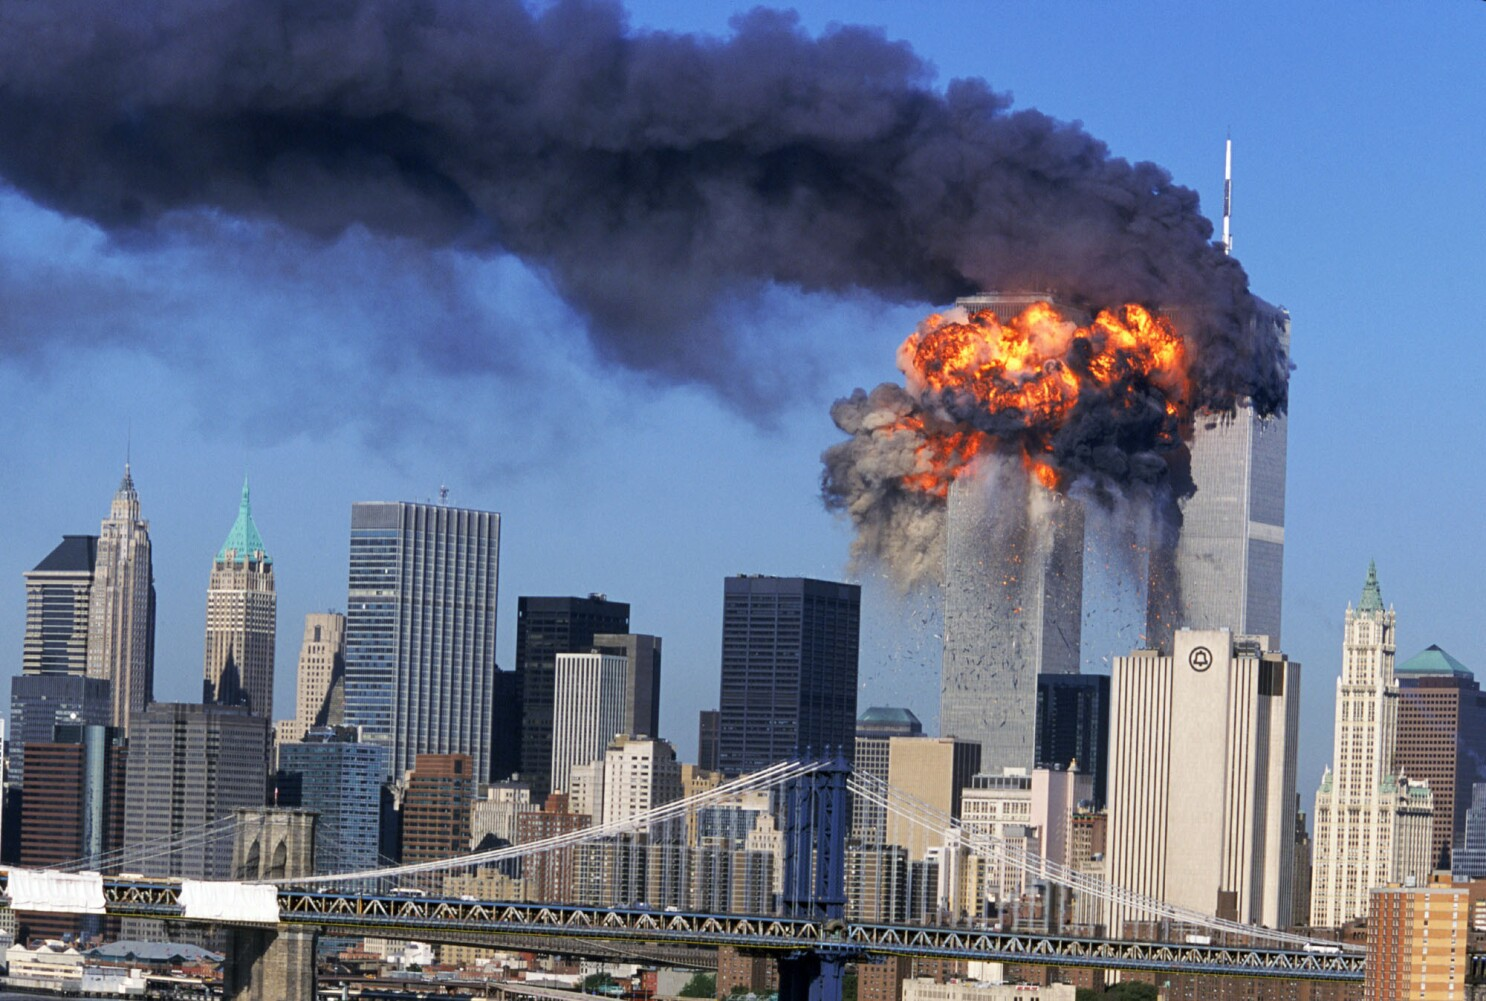 World Trade Center and Pentagon attacked on Sept. 11, 2001 - Los ...